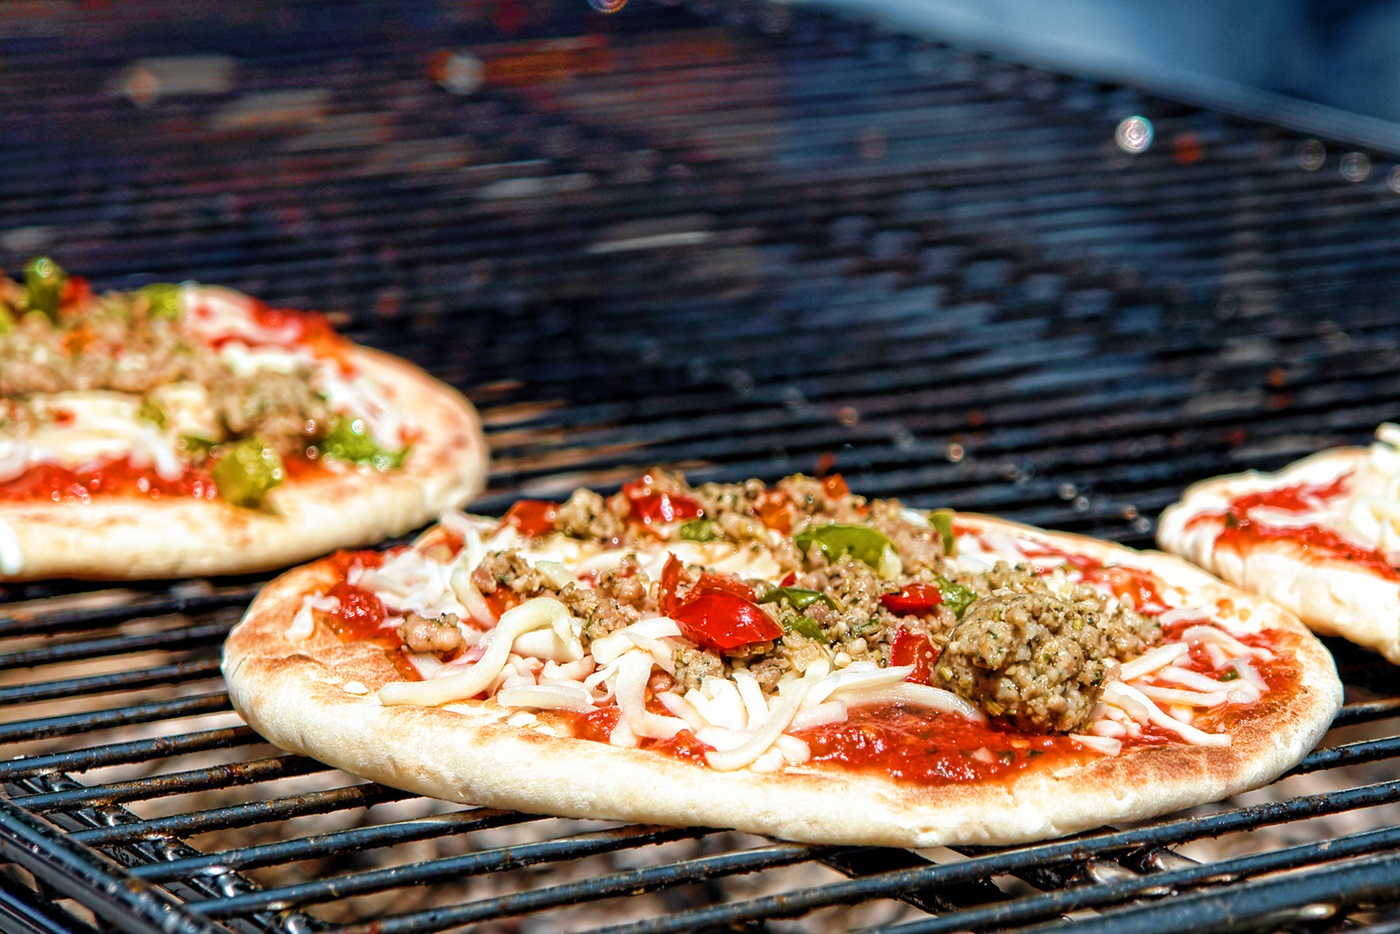 How to Grill Pizza plus a Vegan Grilled Pizza Recipe